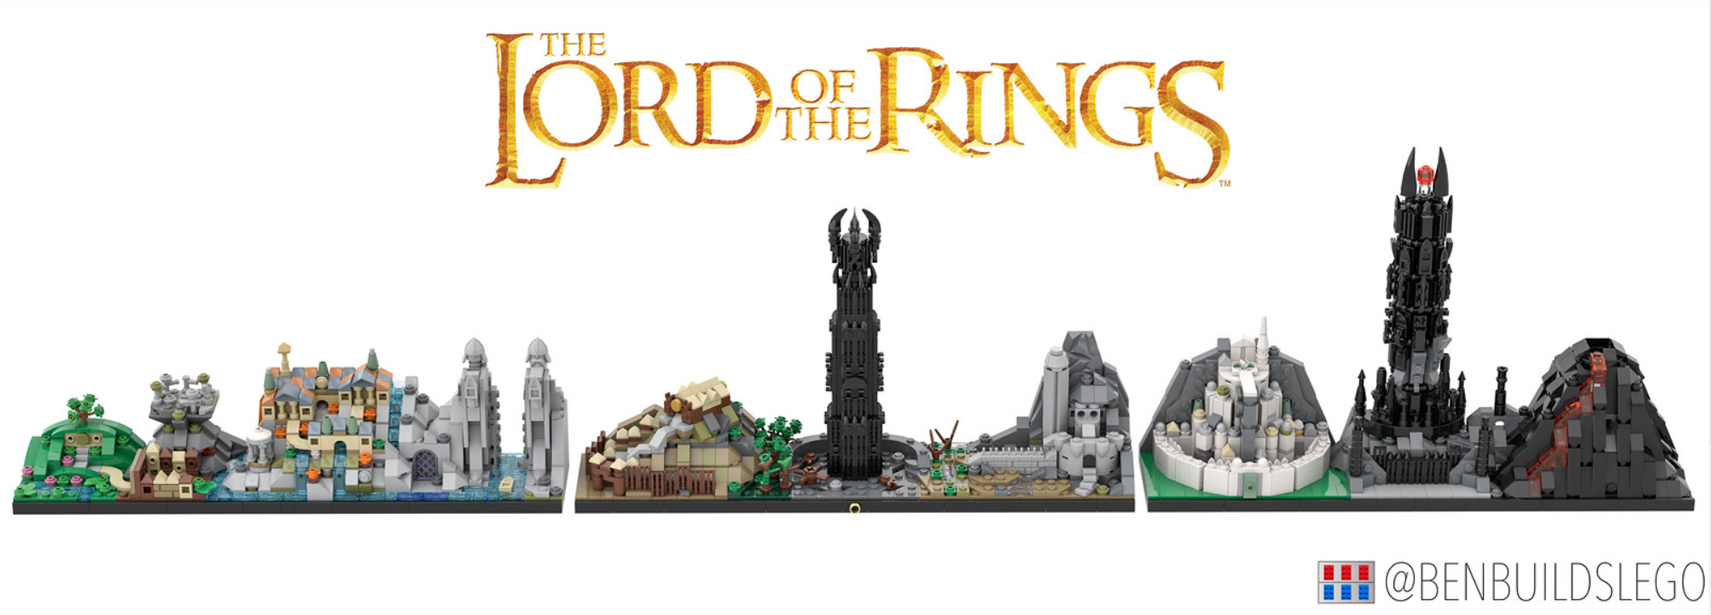 lego lord of the rings skyline